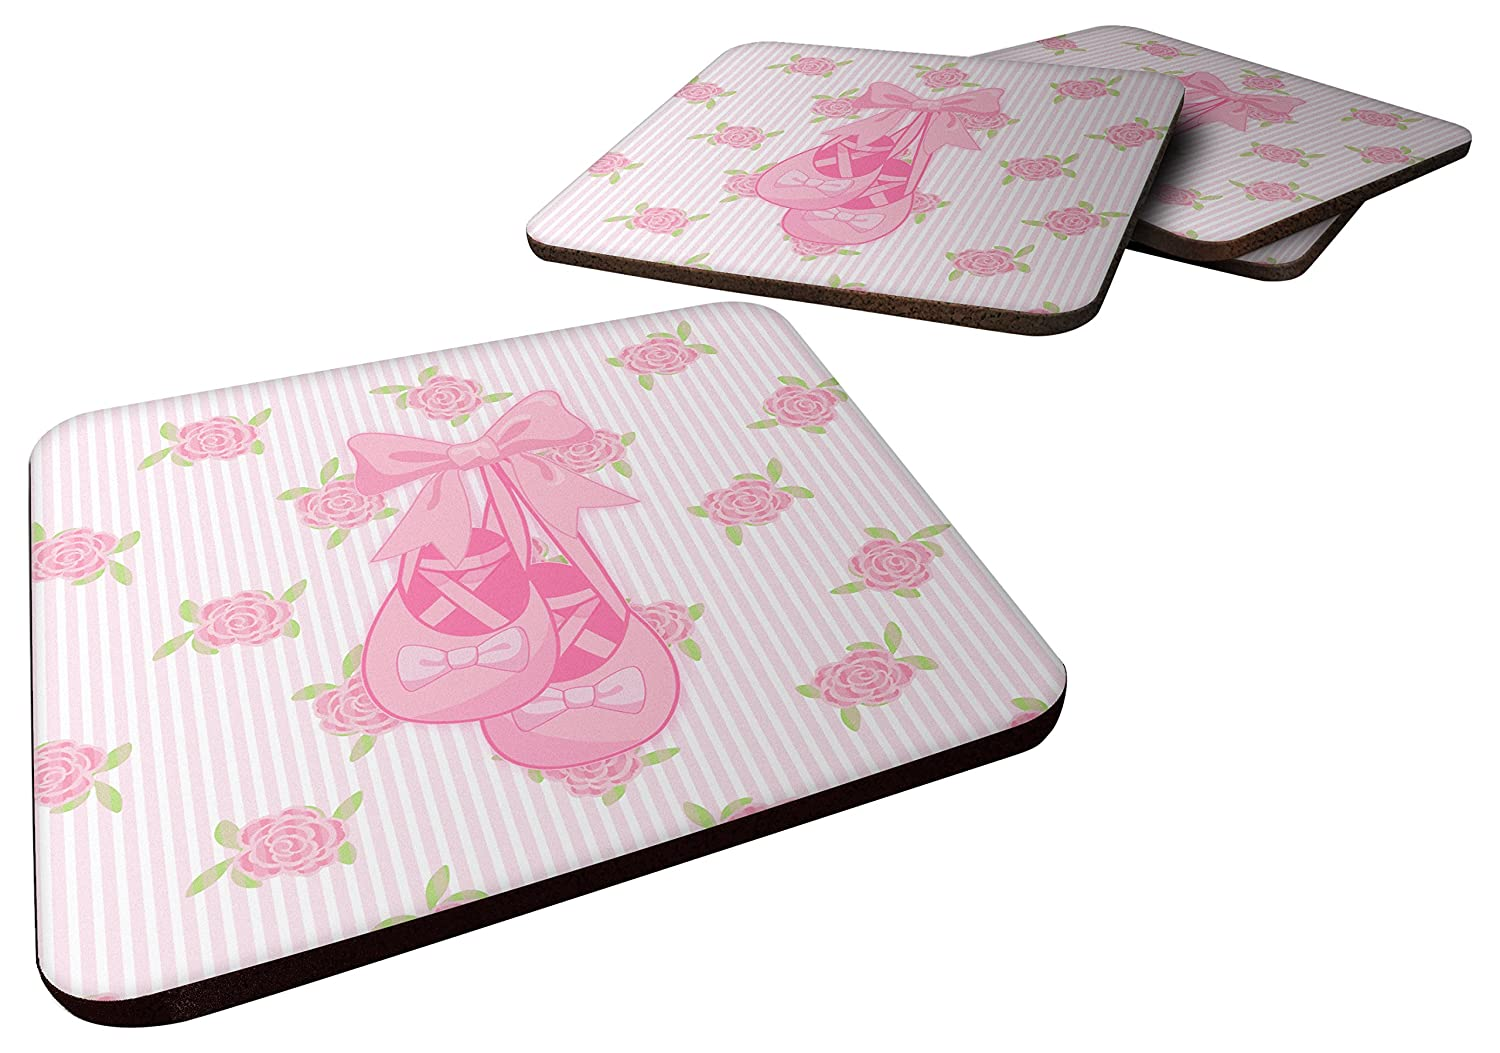 3.5 Carolines Treasures Ballerina Ballet Shoes Foam Coaster Set of 4 Multicolor